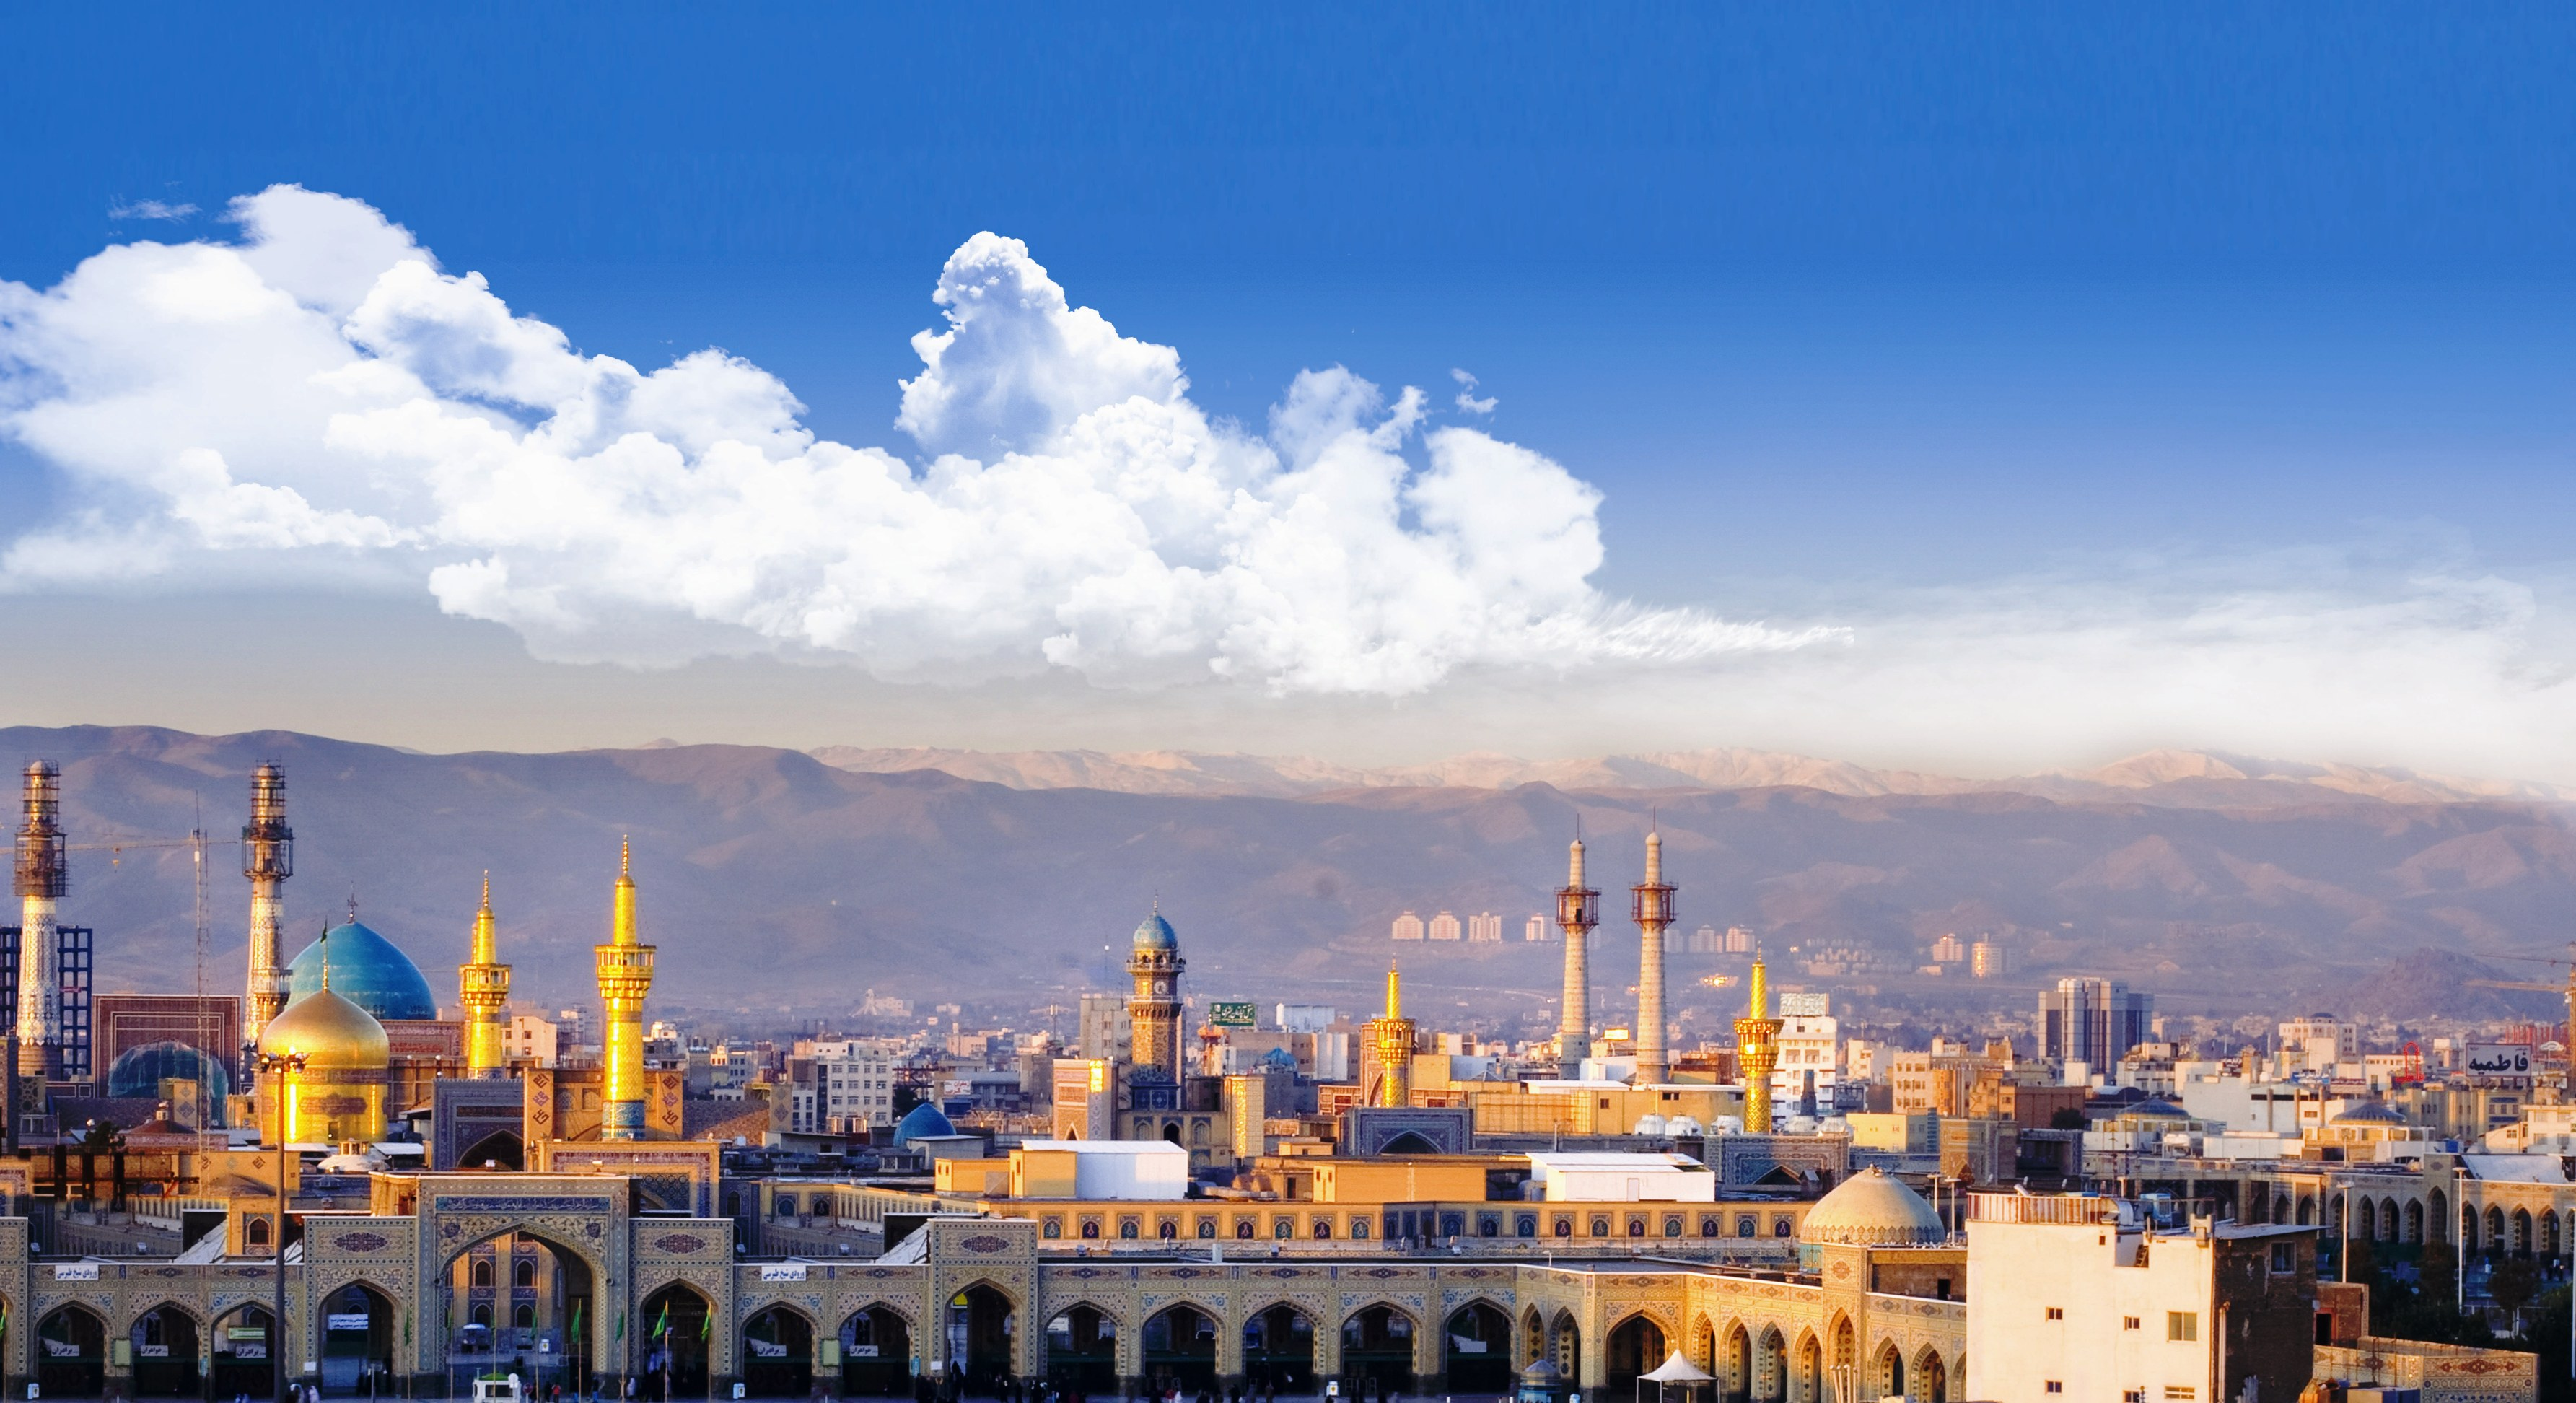 Iran cheap hotels، desert tour iran، healthcare package iran، Iran nomad، Iran Eco tours